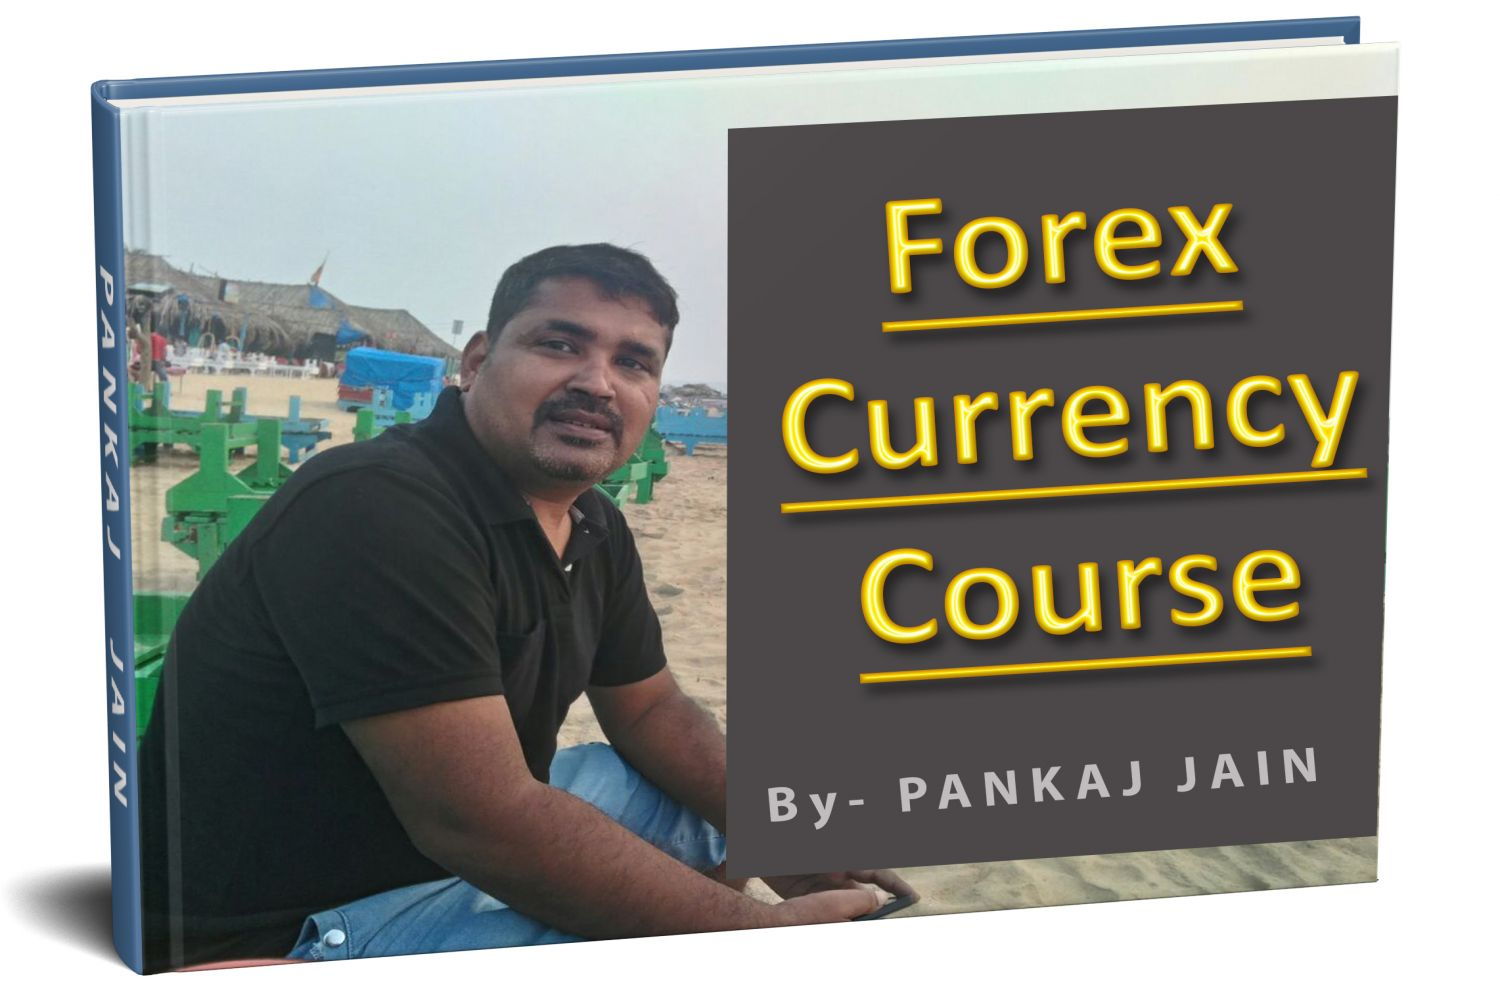 Forex Trading Course India